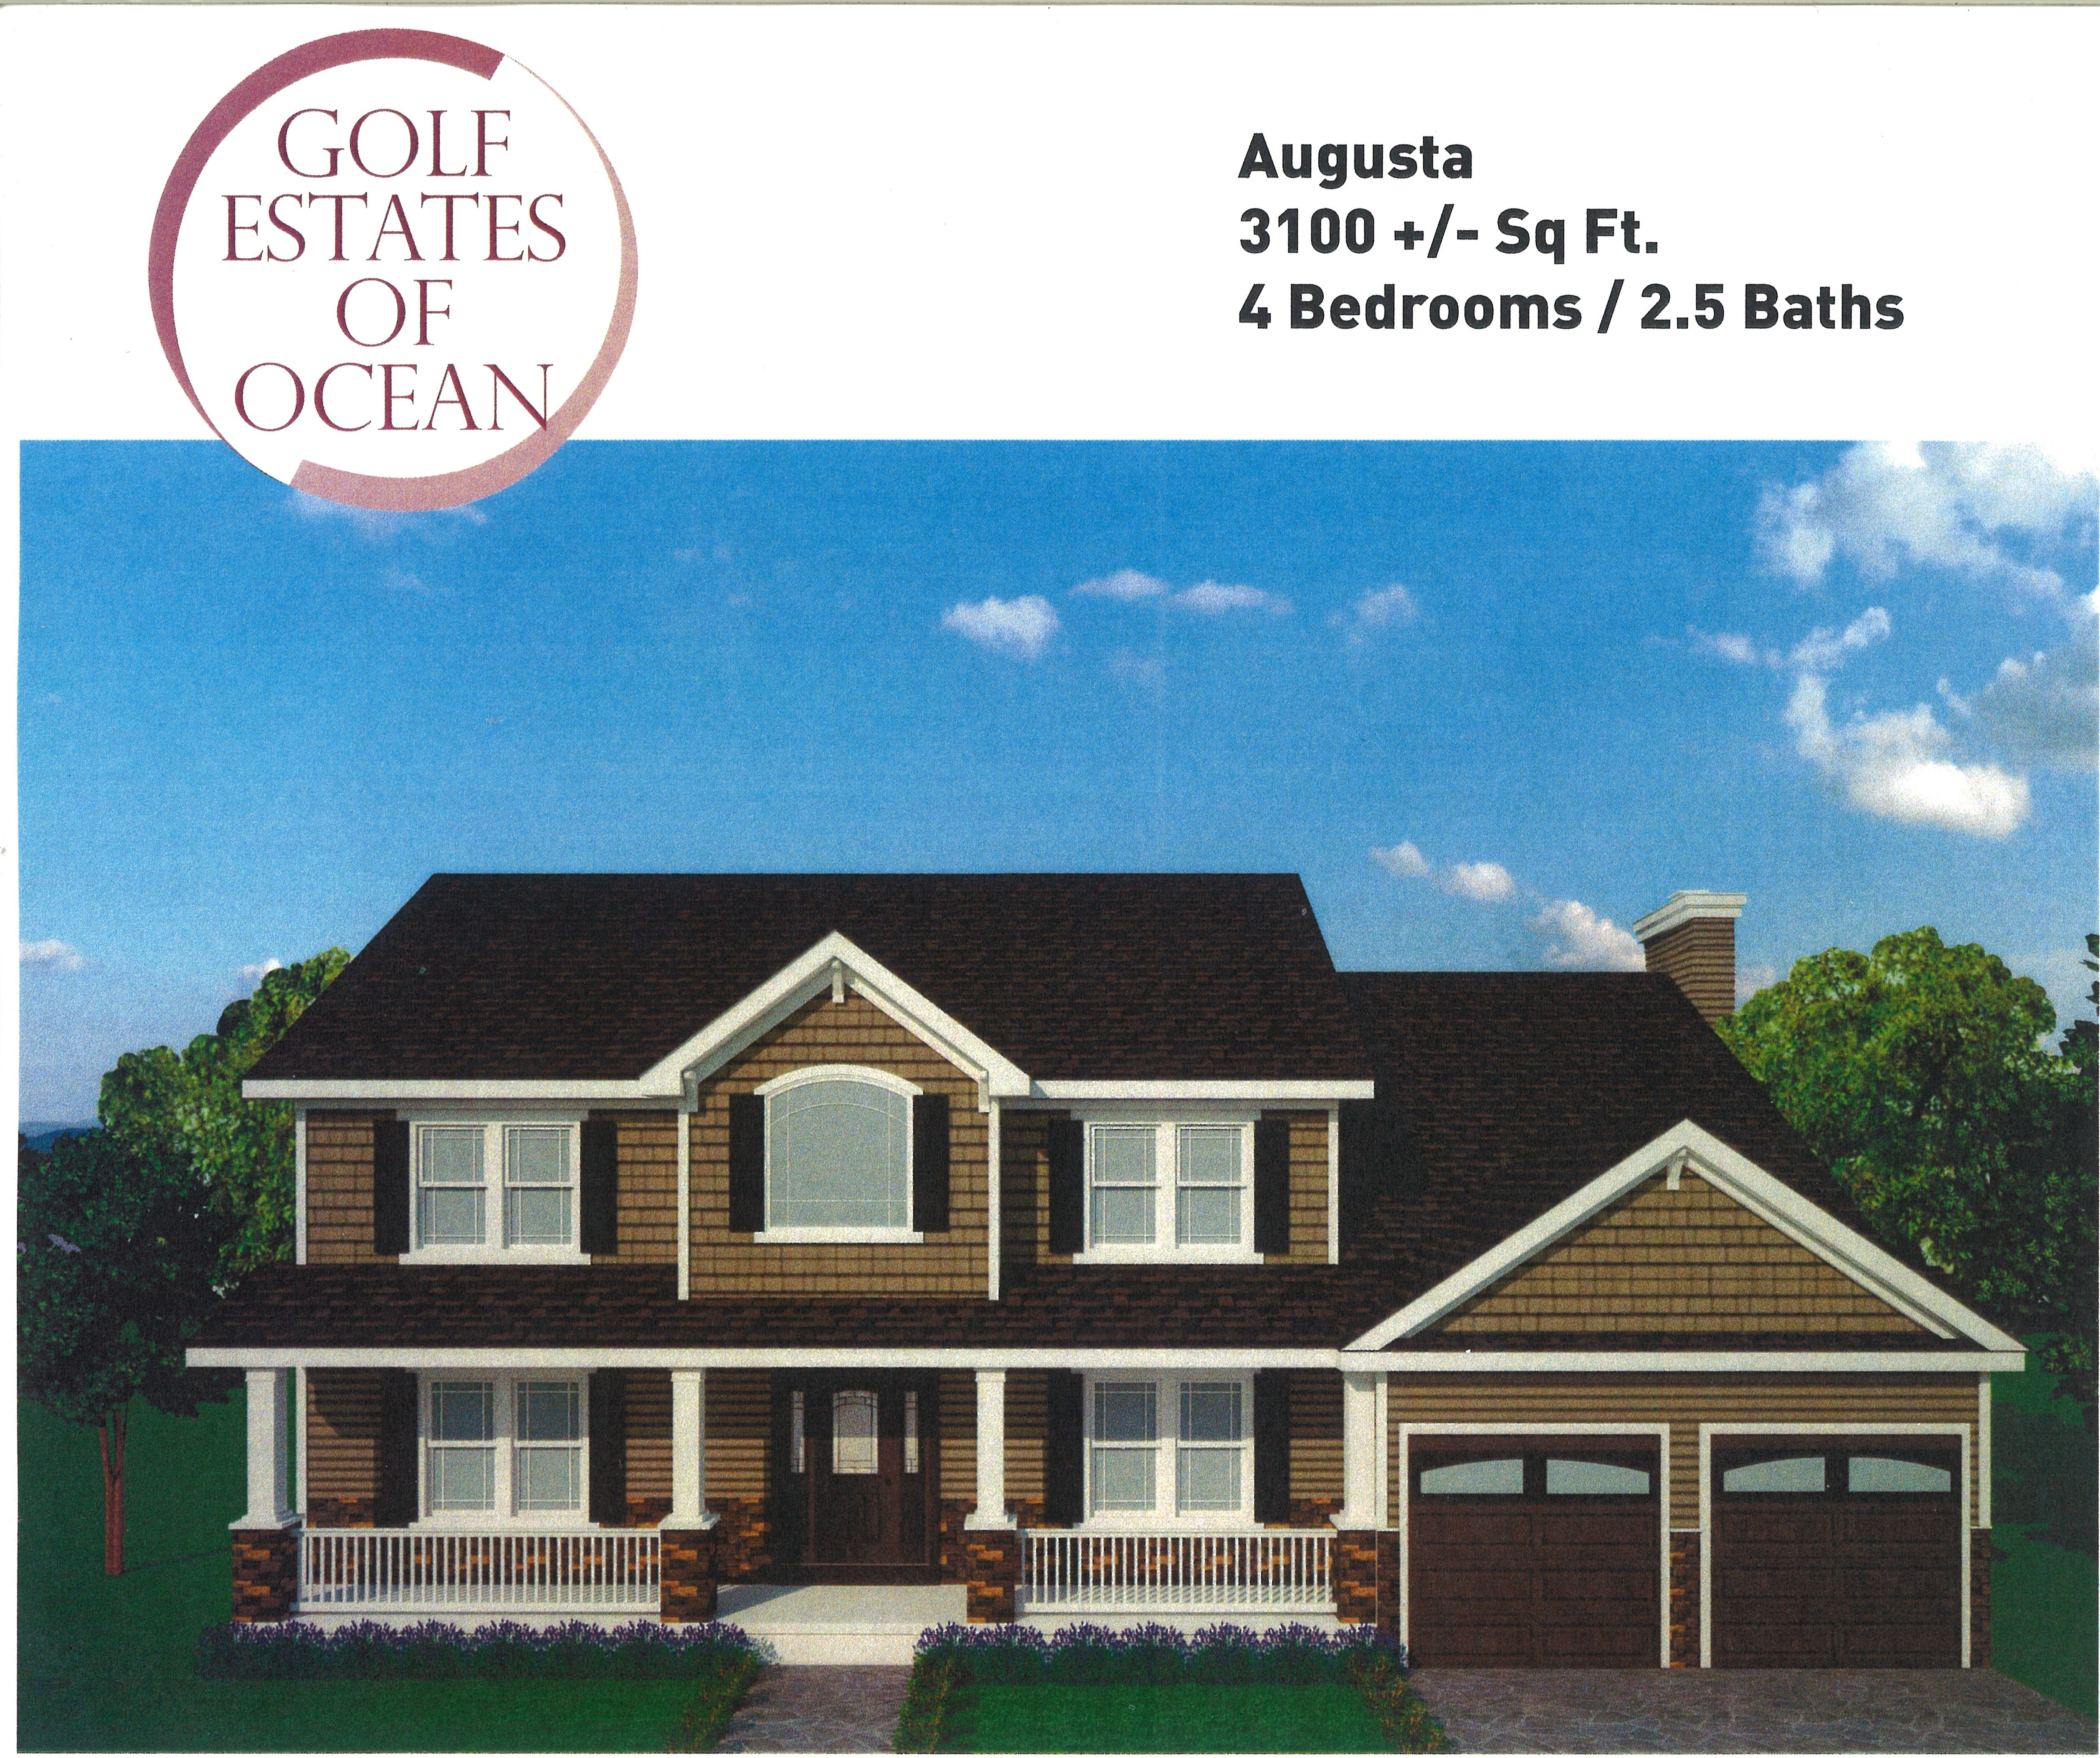 The Augusta model is approximately 3100 SF and has 4 bedrooms and 2.5 baths